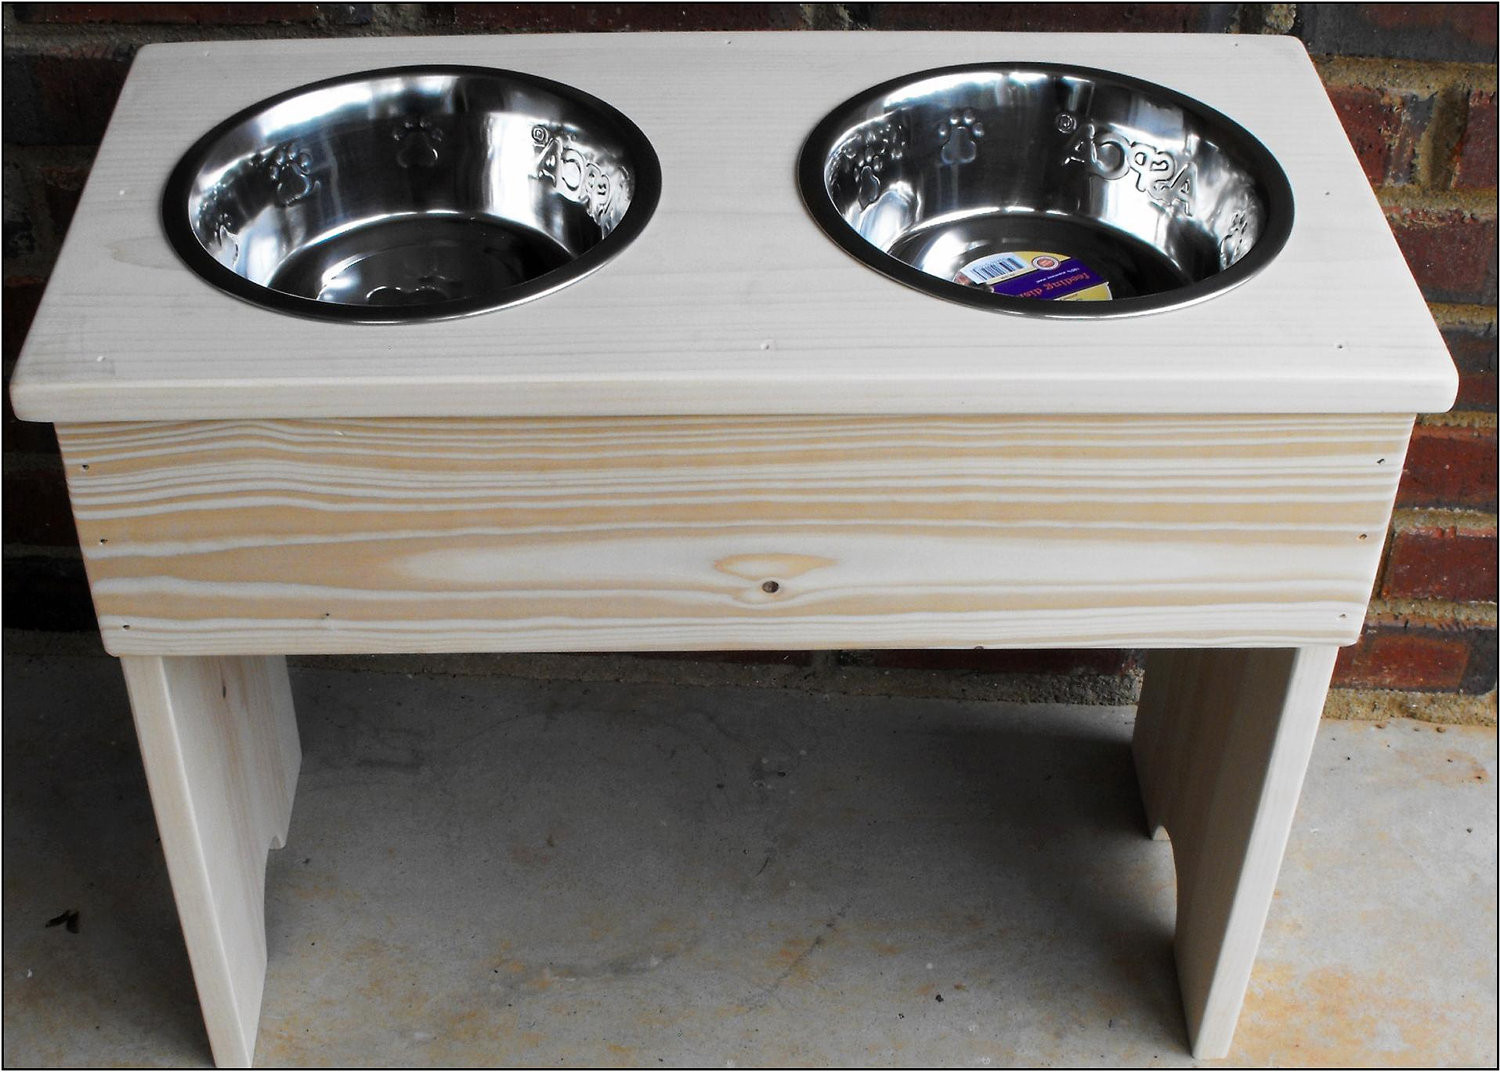 Best ideas about Dog Bowl Stand DIY . Save or Pin Items similar to Raised Dog Bowl Stand Naked DIY Finish Now.